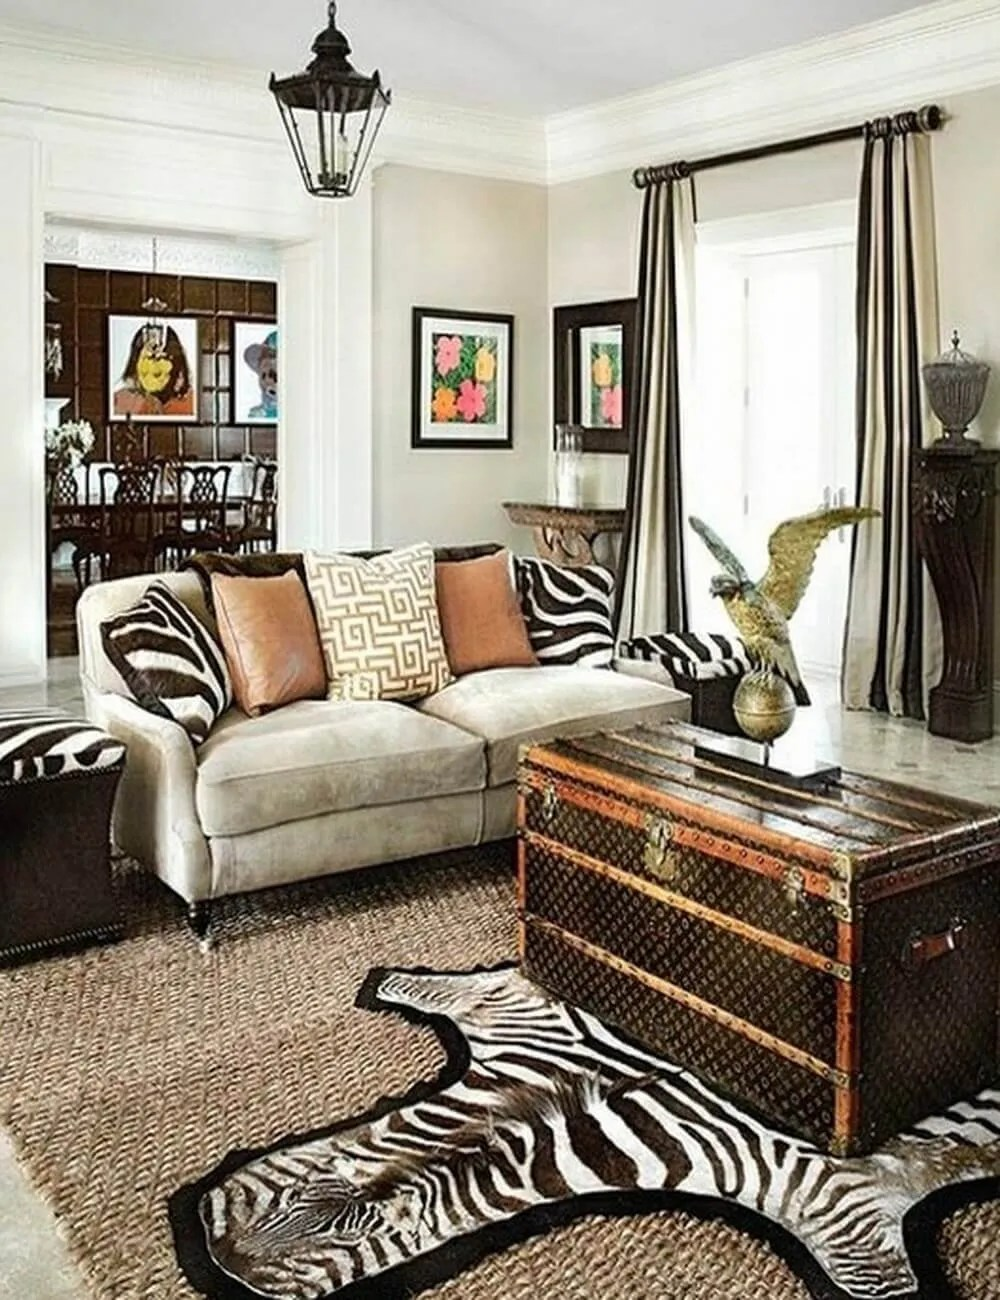 Zebra print living room decor for Room decor zebra print